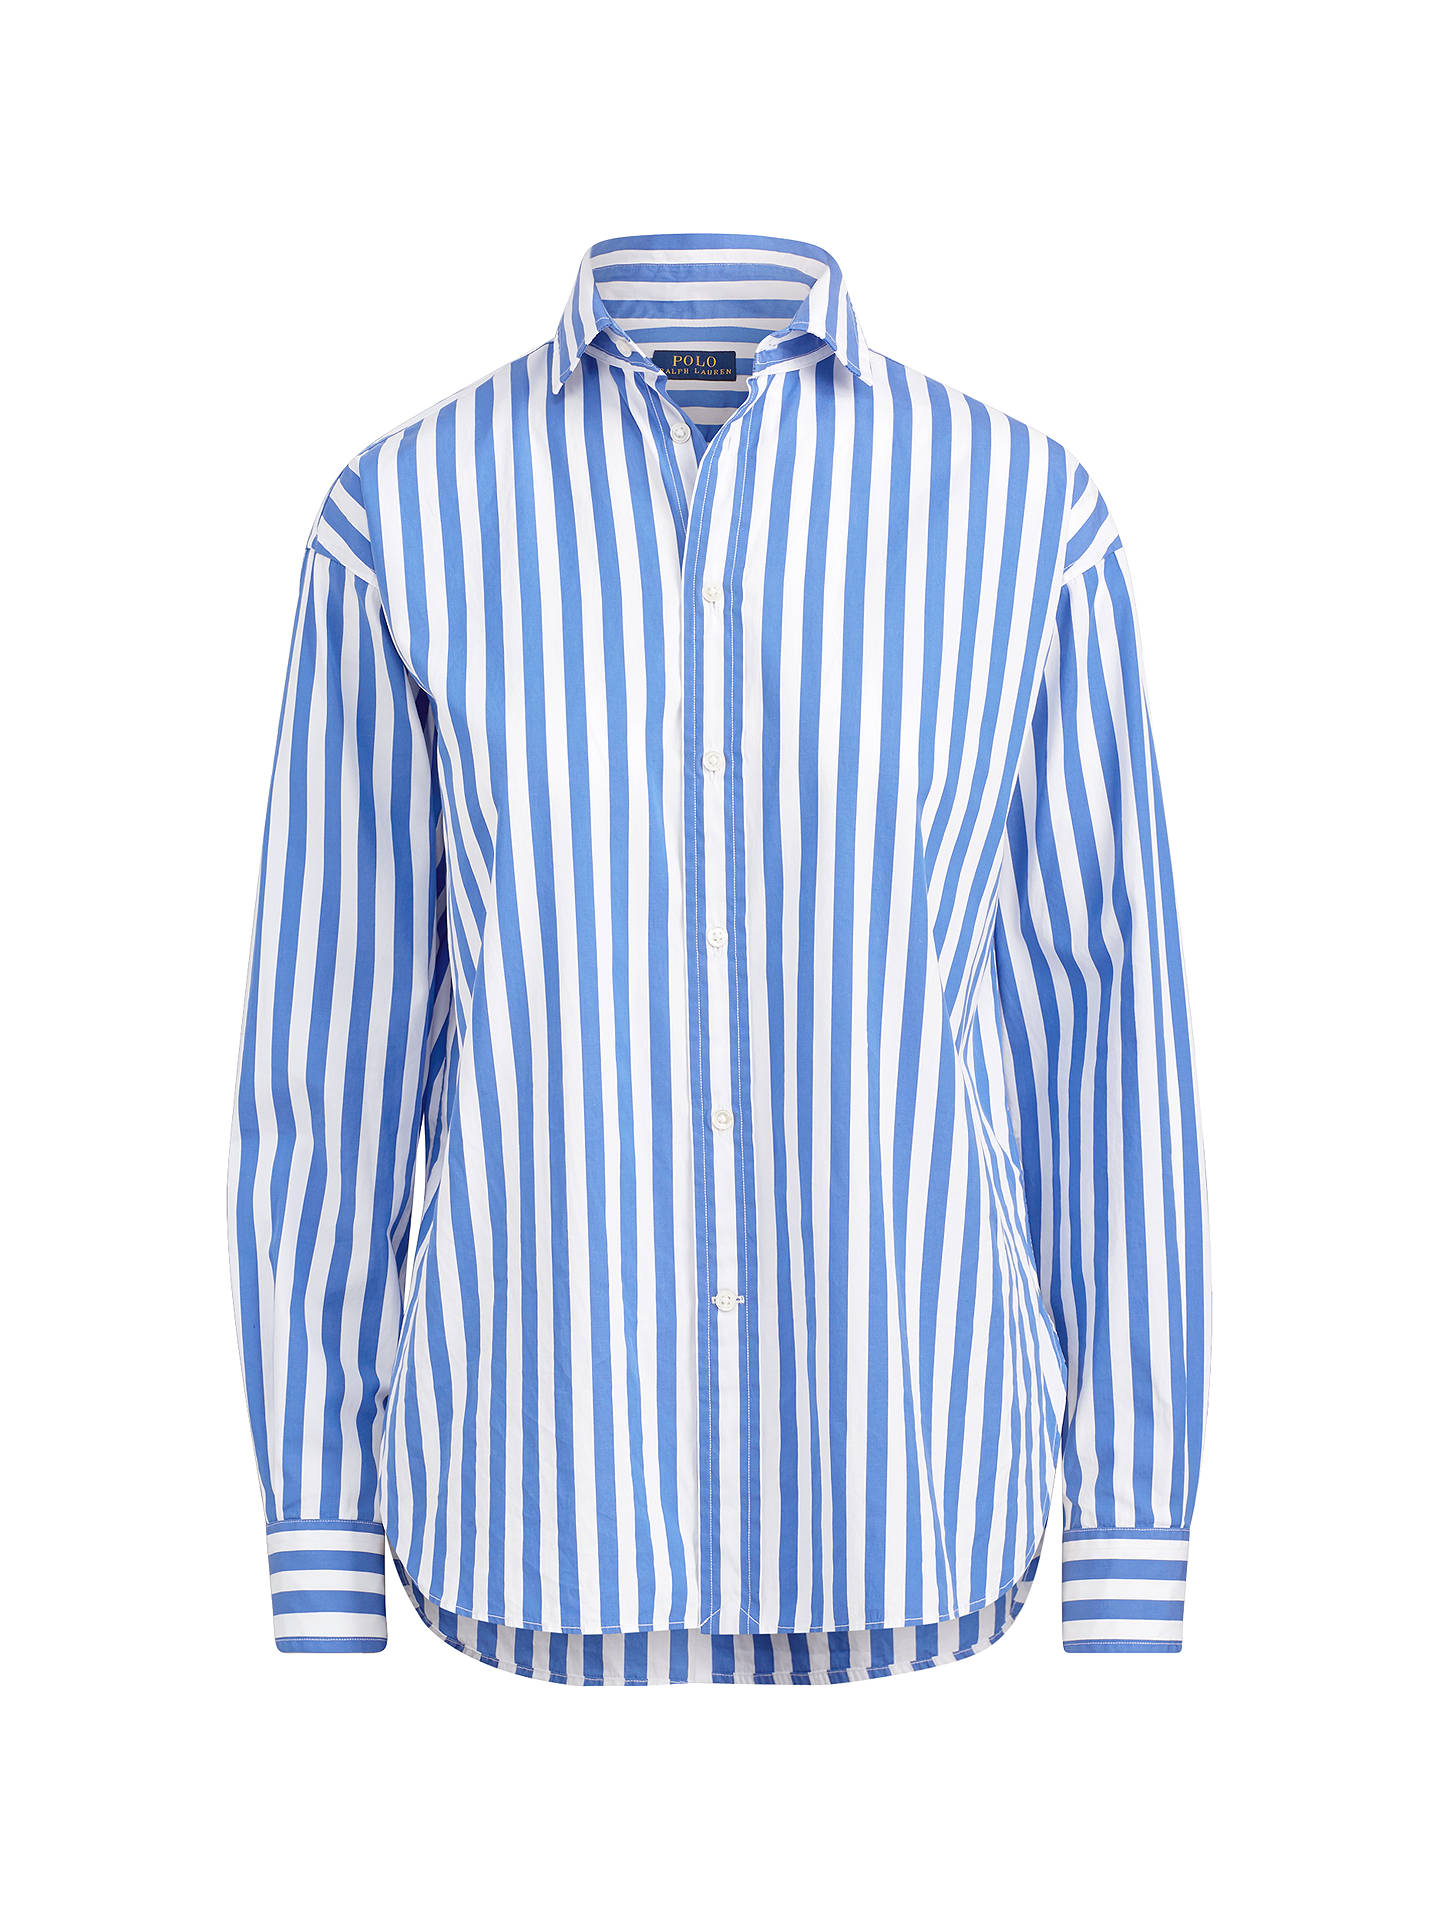 5d1f08d1f ... buy buypolo ralph lauren striped shirt blue white 8 online at johnlewis  47b09 6358c